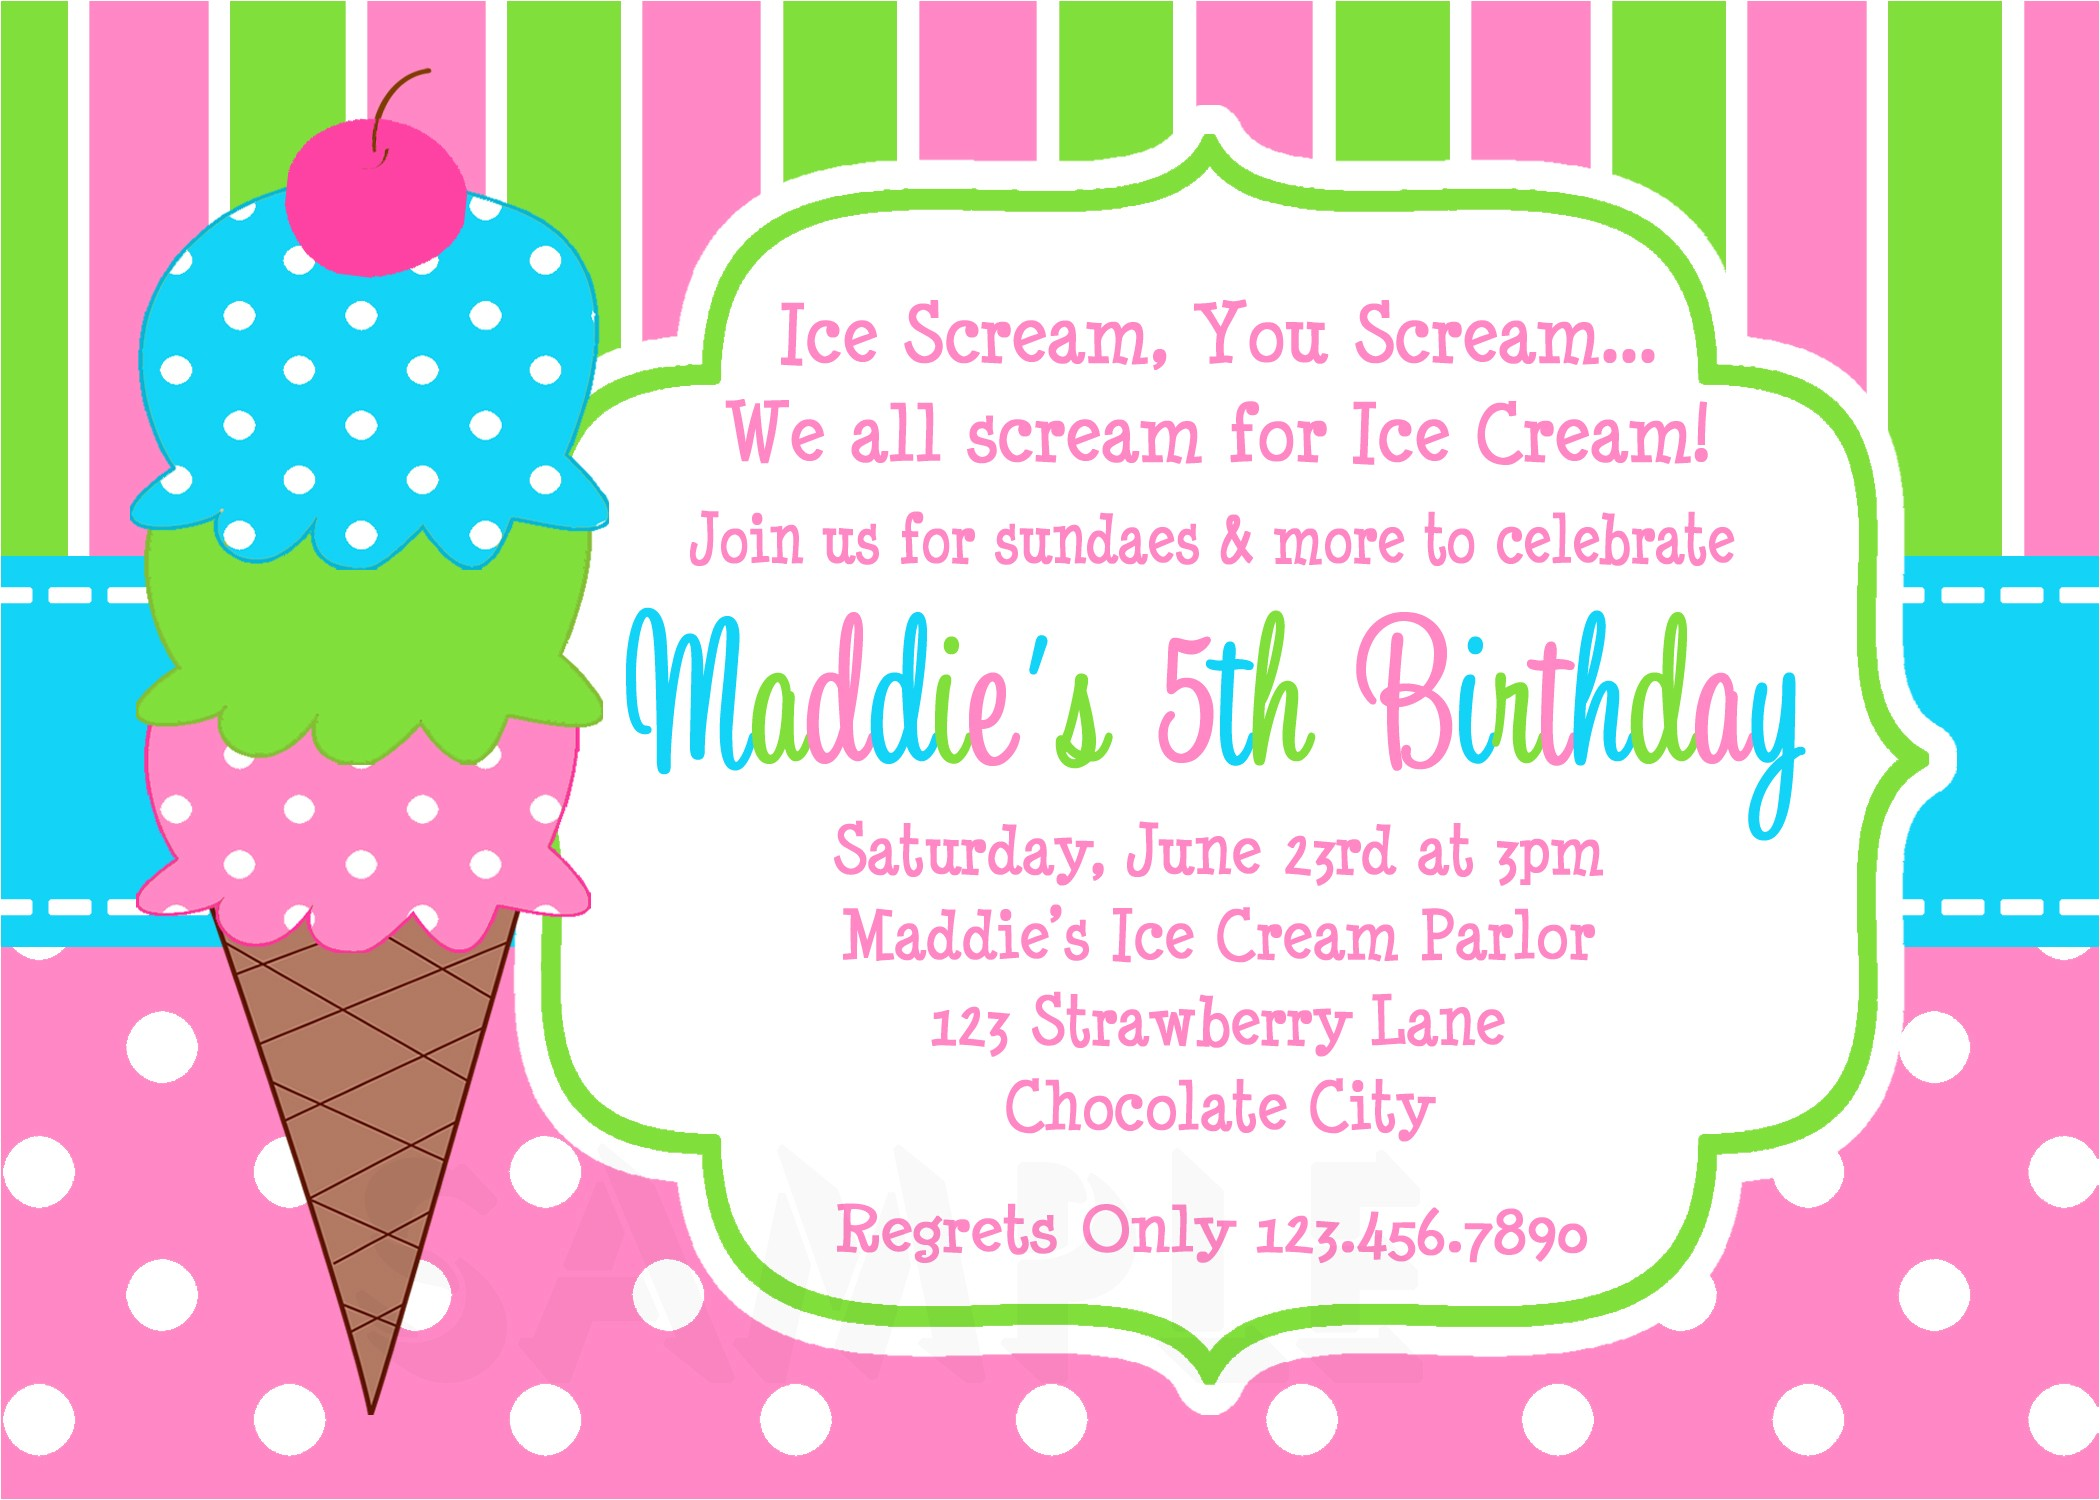 ice cream birthday party invitations pink green